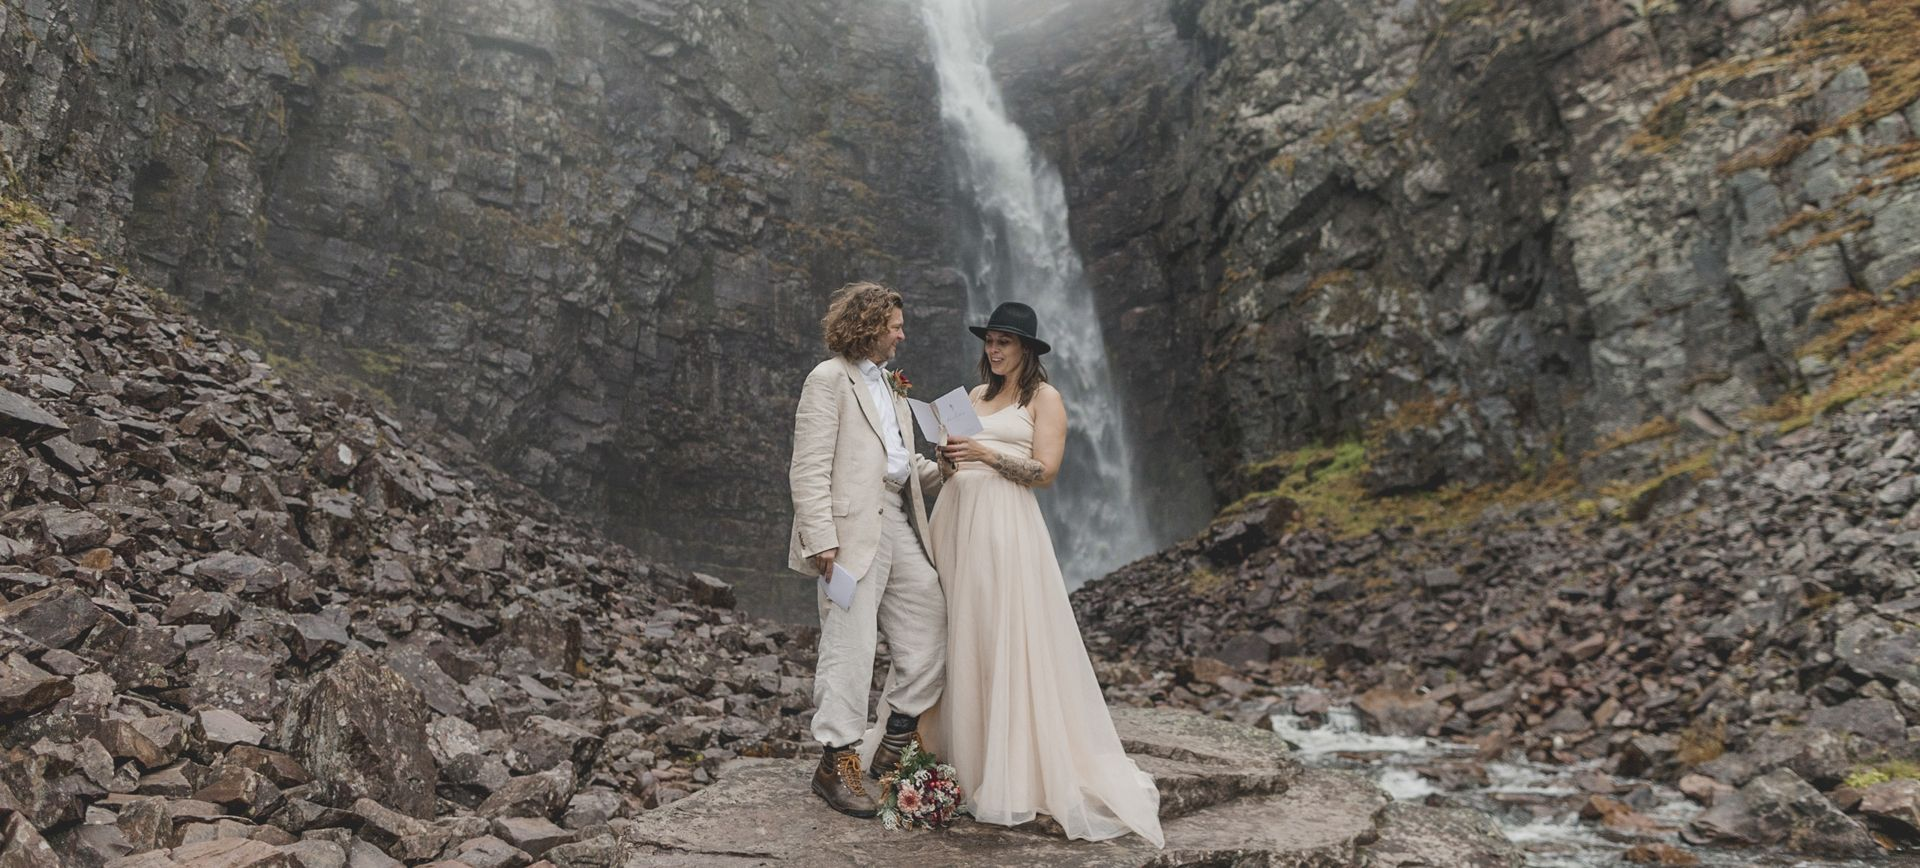 glamping wedding in sweden - waterfall adventure wedding